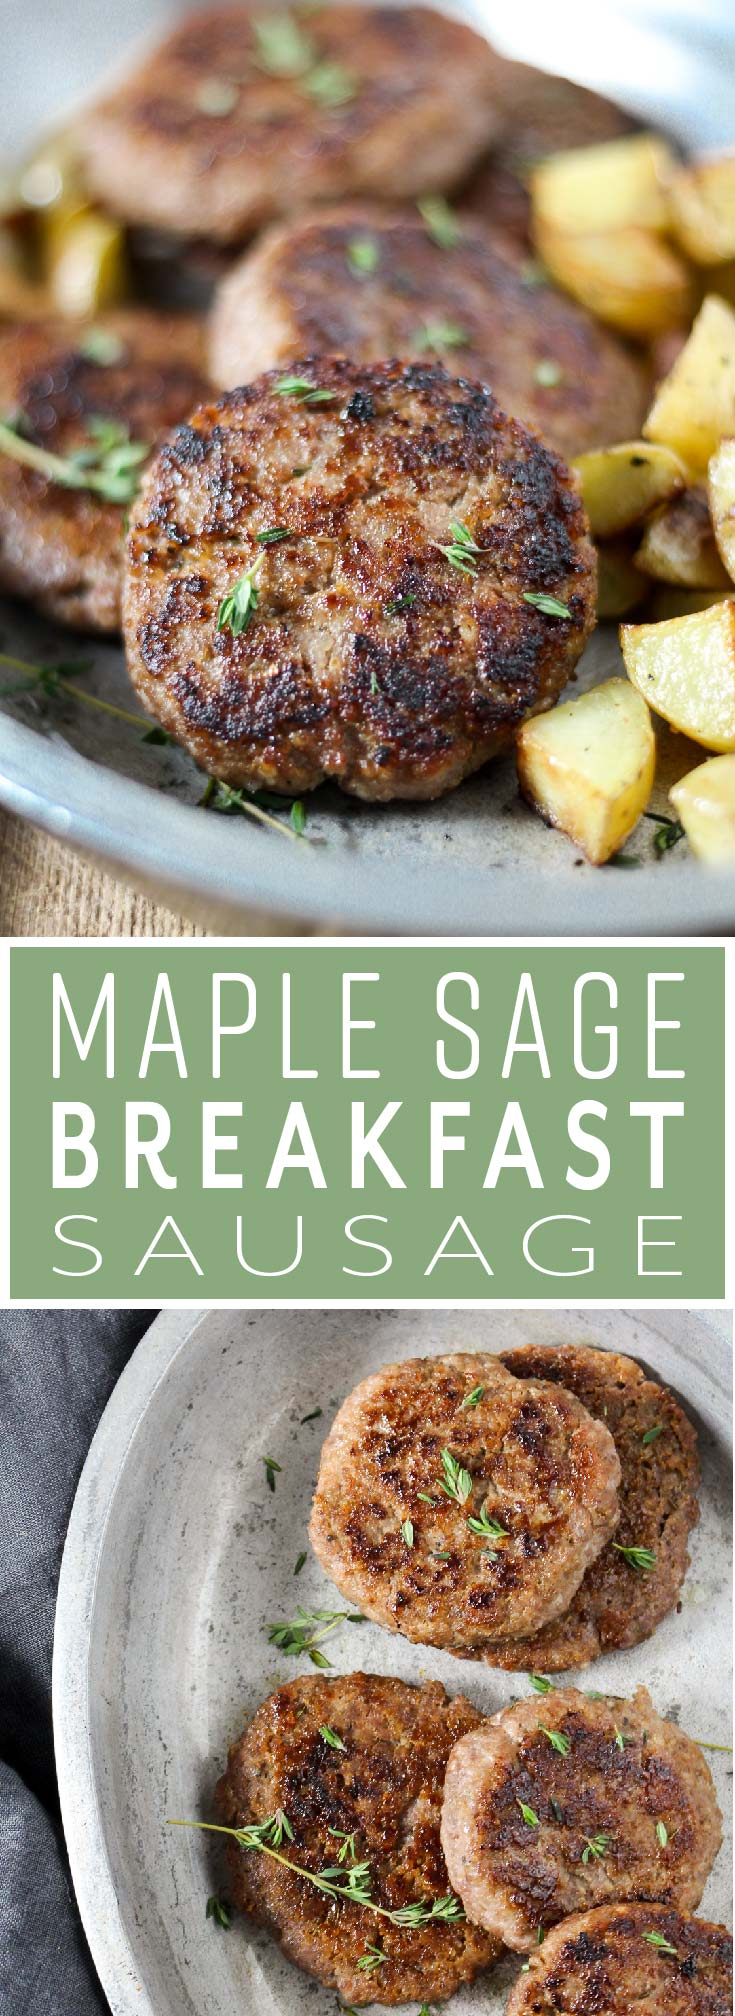 Maple Sage Breakfast Sausage is better than any breakfast sausage you can buy at the store! It's super easy to make and uses real ingredients you can feel good about eating. You just need ground pork, real maple syrup, and seasoning that you likely already have in your kitchen.